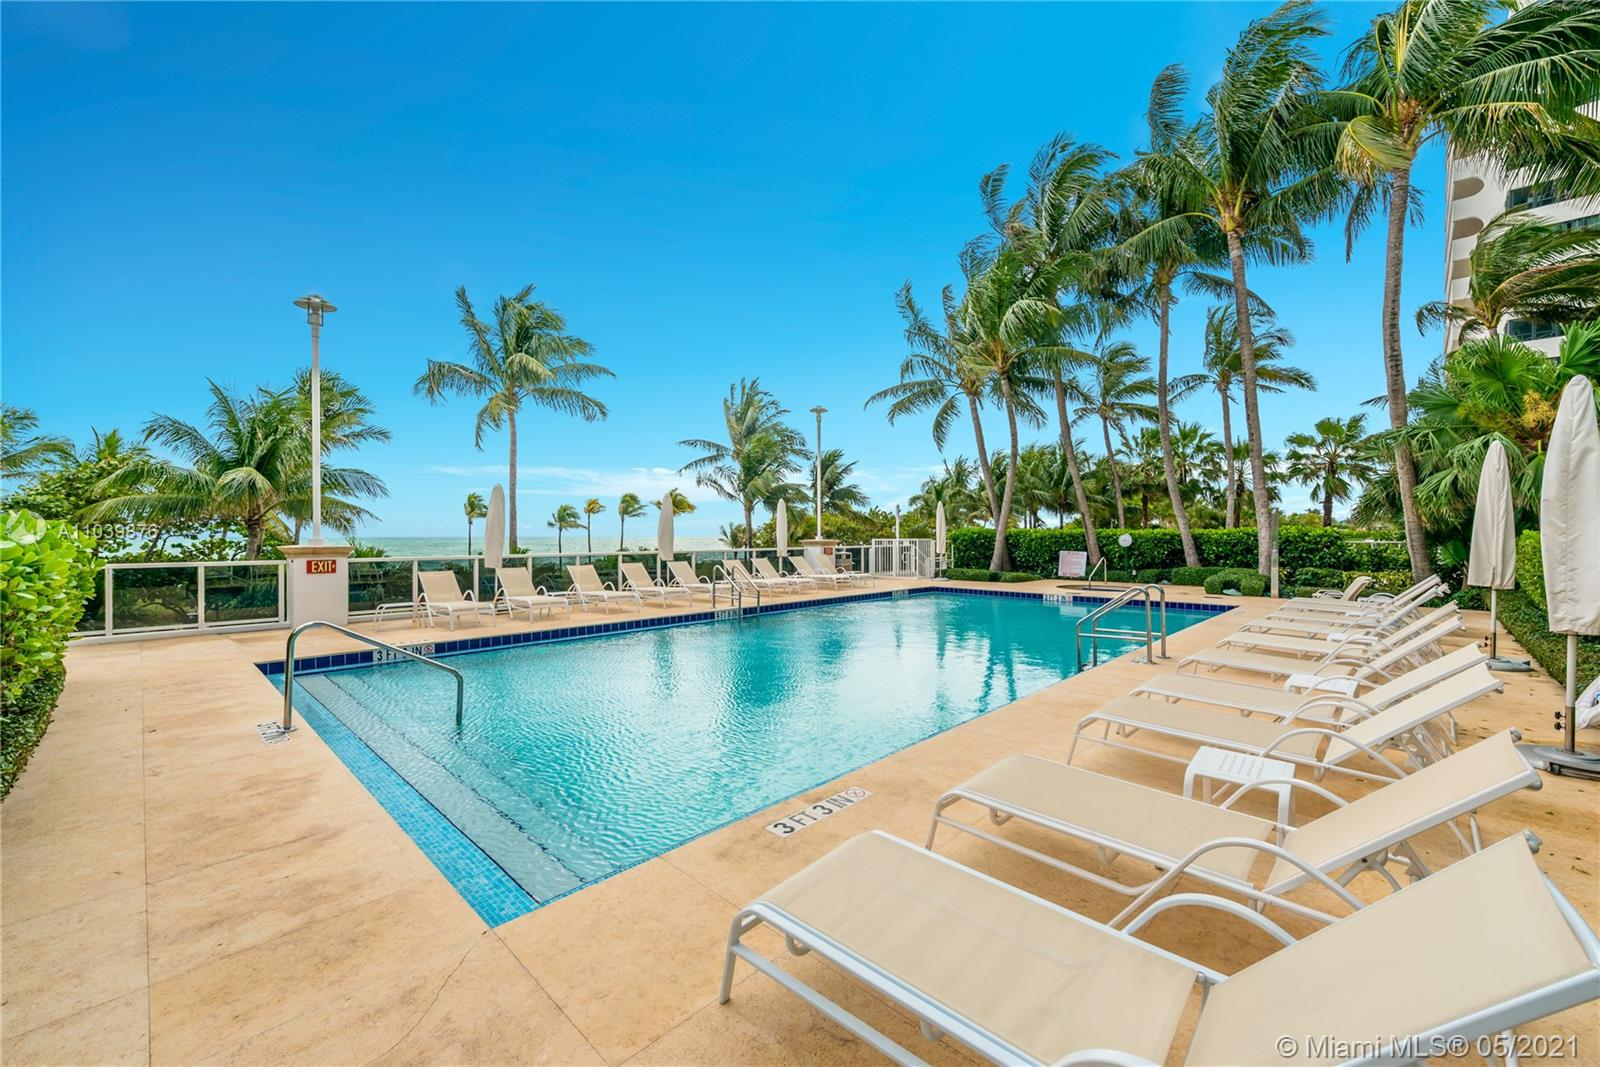 Photo of 10225 Collins Ave #1703, Bal Harbour, Florida, 33154 - Bellini Condo at 10225 Collins Avenue, Bal Harbour.